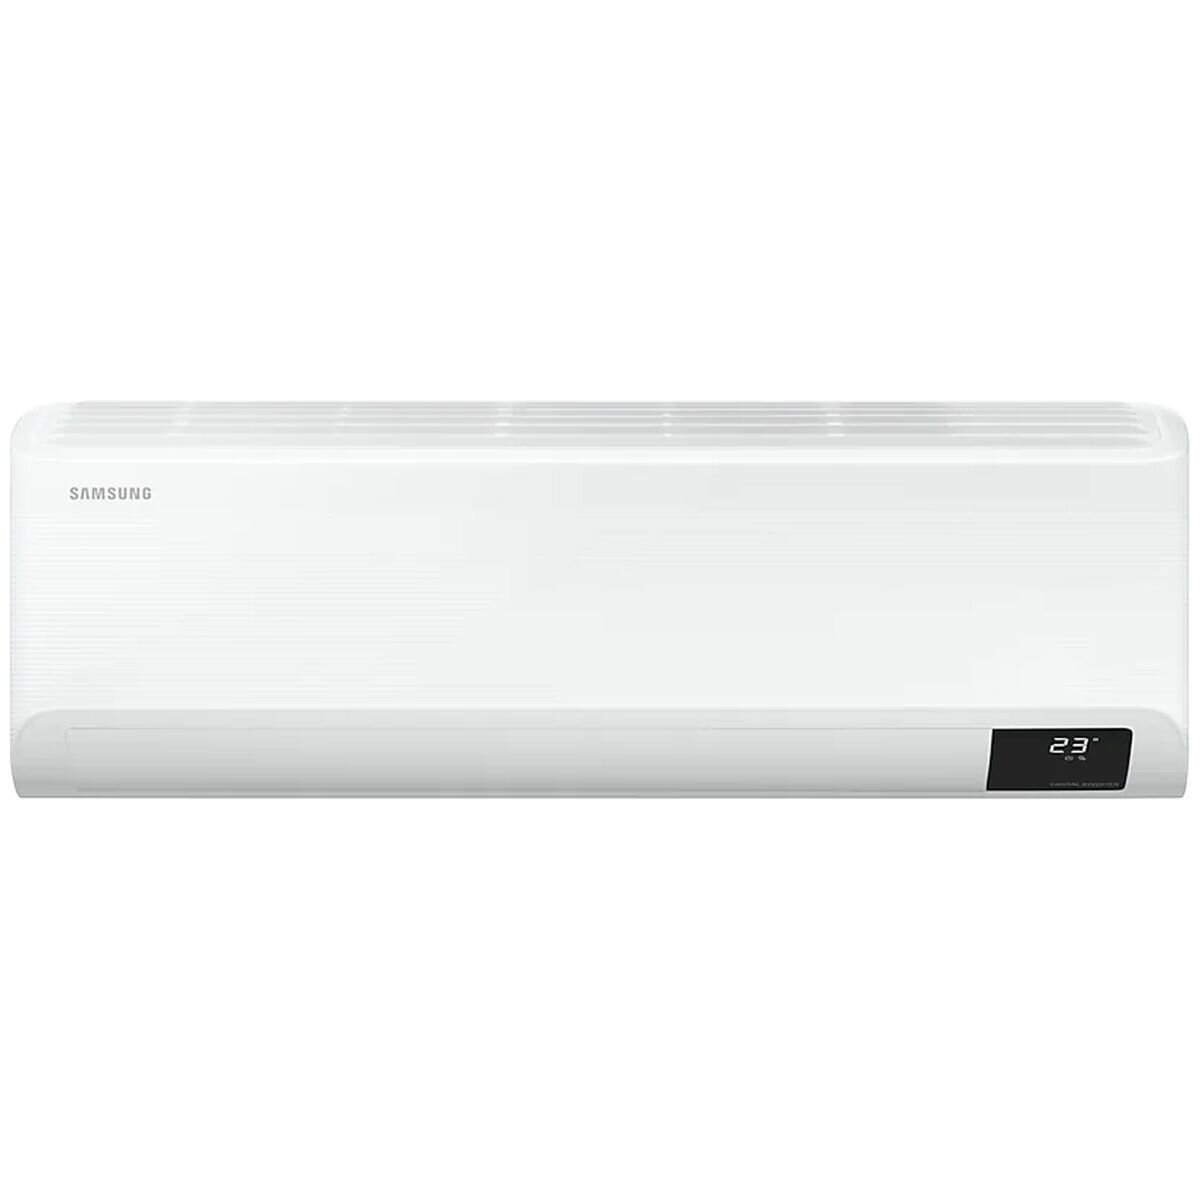 Samsung 3.5kW Reverse Cycle Split System Air Conditioner AR12TXHYBWKN/AR12TXHYBWKX - FREE Delivery & Price Match* image